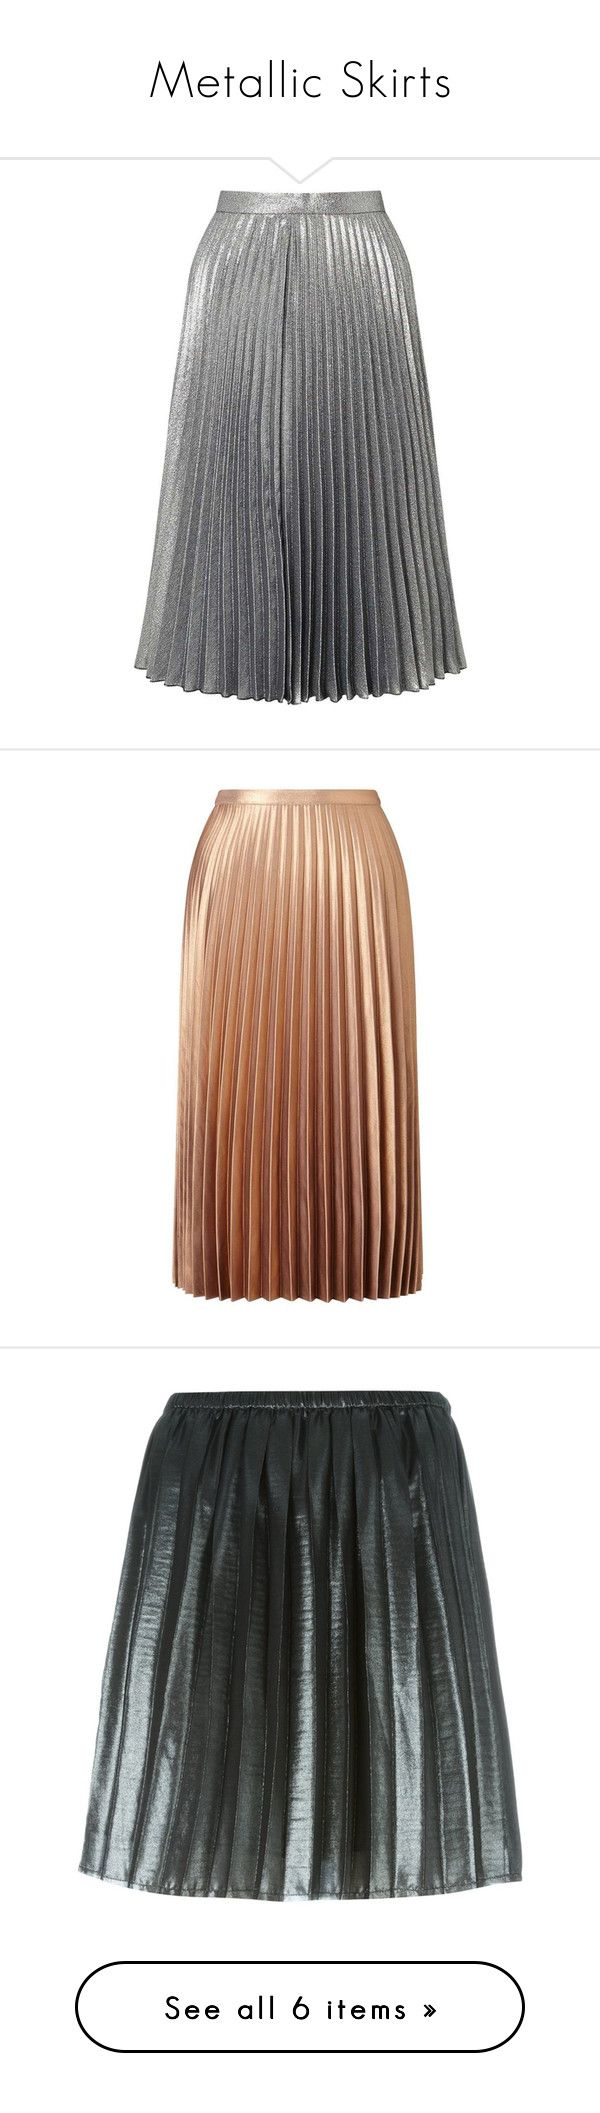 """""""Metallic Skirts"""" by ukelouiza ❤ liked on Polyvore featuring skirts, bottoms, silver metal, sparkle skirts, knee length pleated skirt, metallic pleated skirt, miss selfridge, party skirts, metallic and brown skirt"""